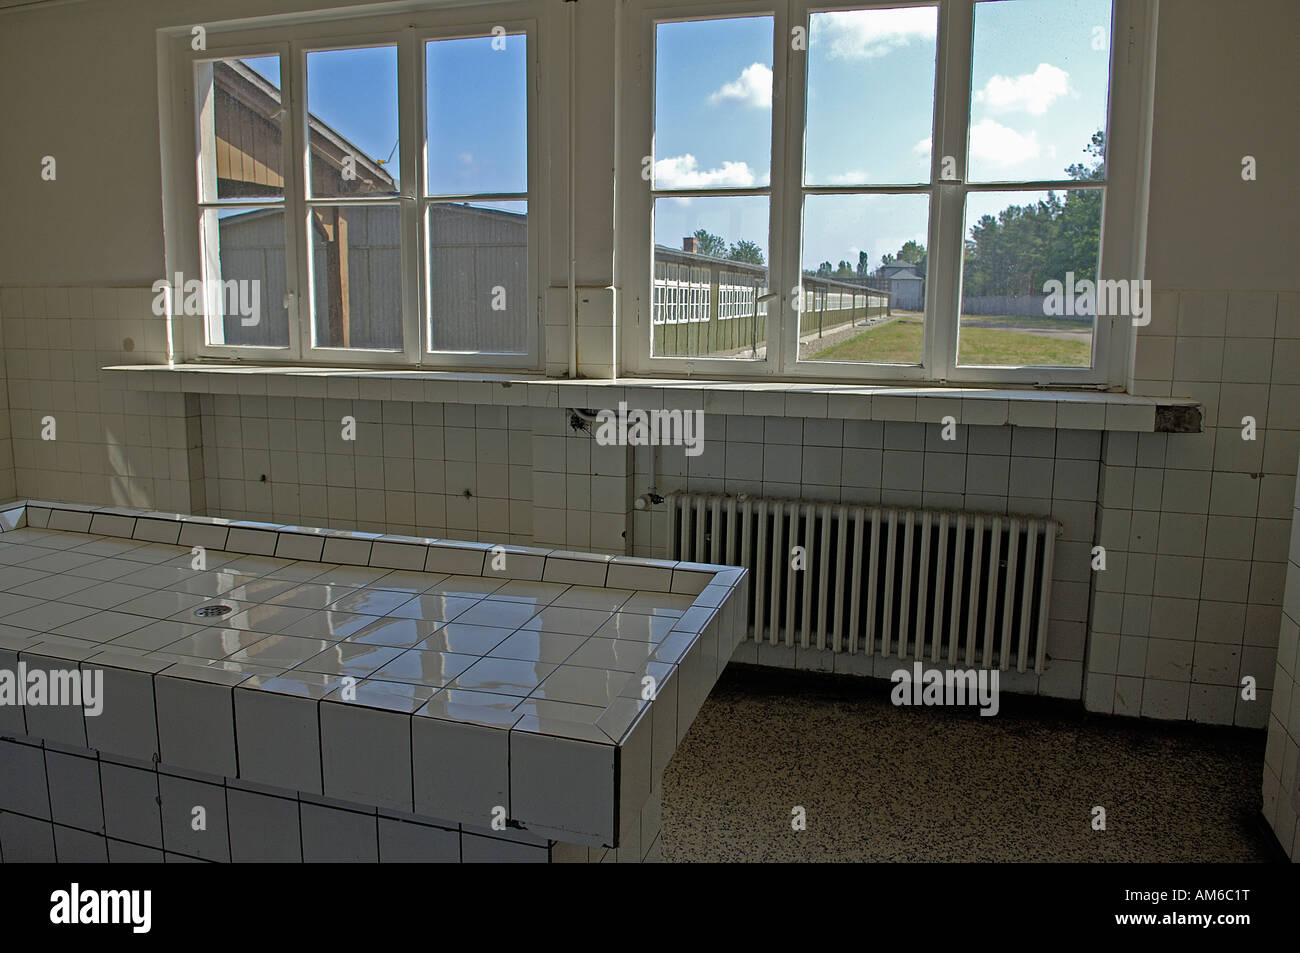 Pathology of concentration camp sachsenhausen, germany - Stock Image